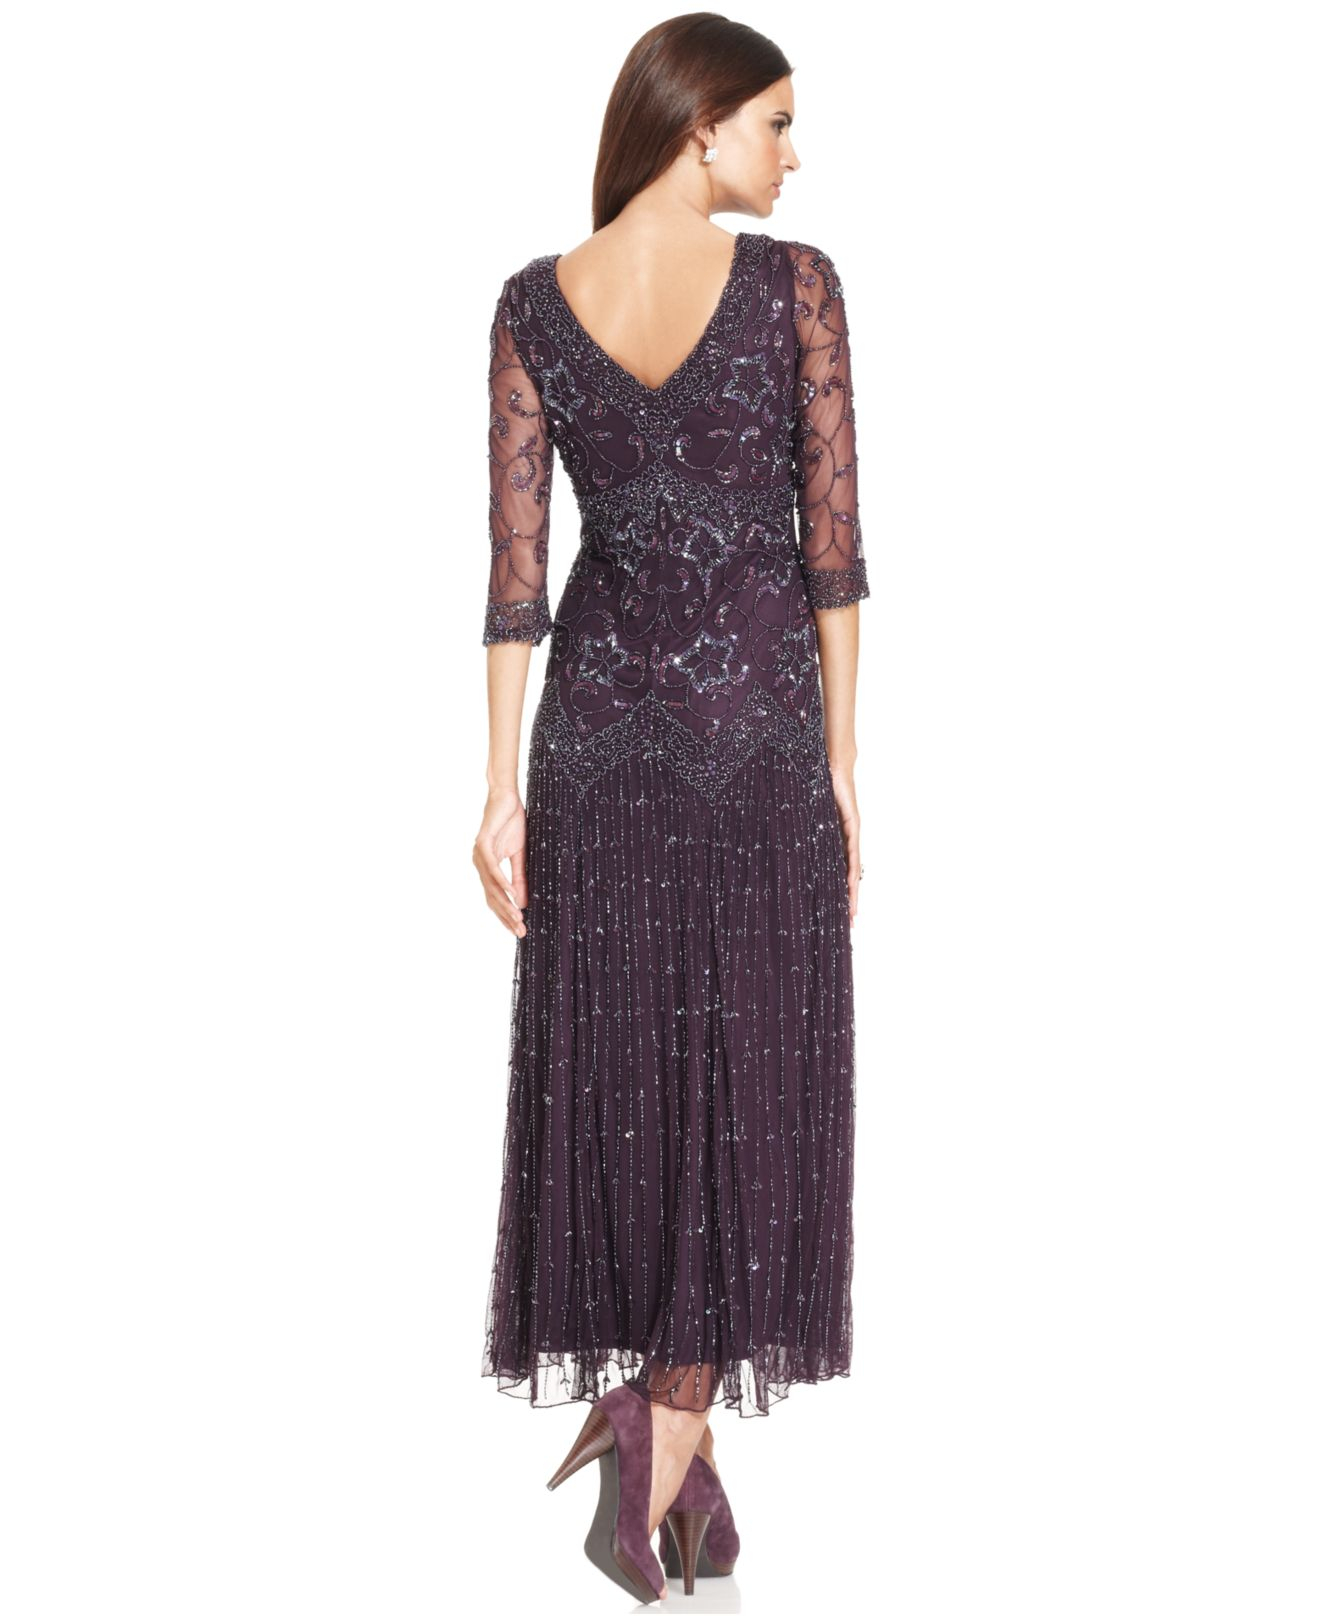 Lyst - Pisarro Nights Three-Quarter-Sleeve Beaded Gown in Metallic